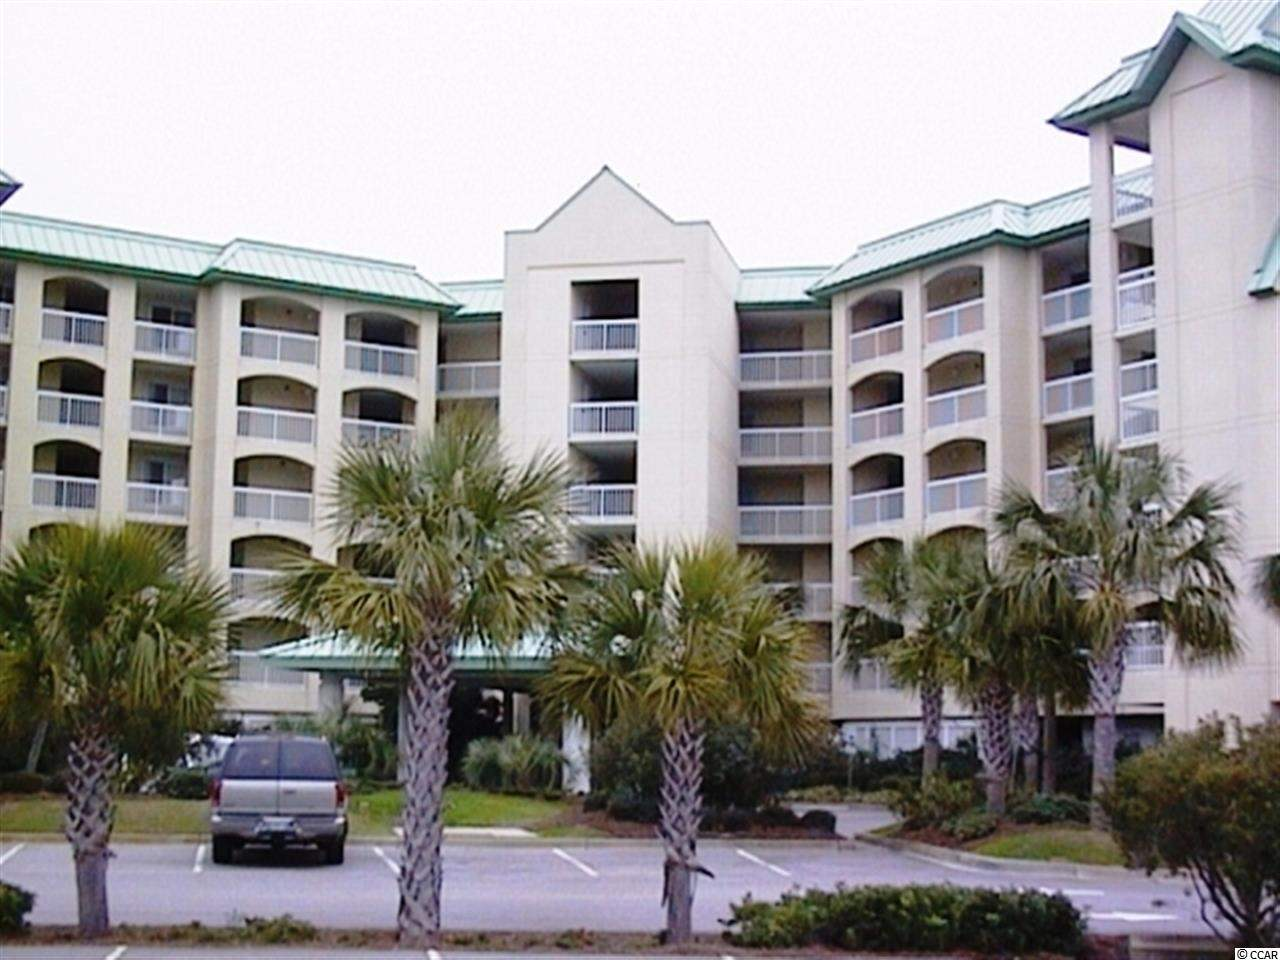 Condo / Townhome / Villa for Sale at 135 S Dunes Drive 135 S Dunes Drive Pawleys Island, South Carolina 29585 United States